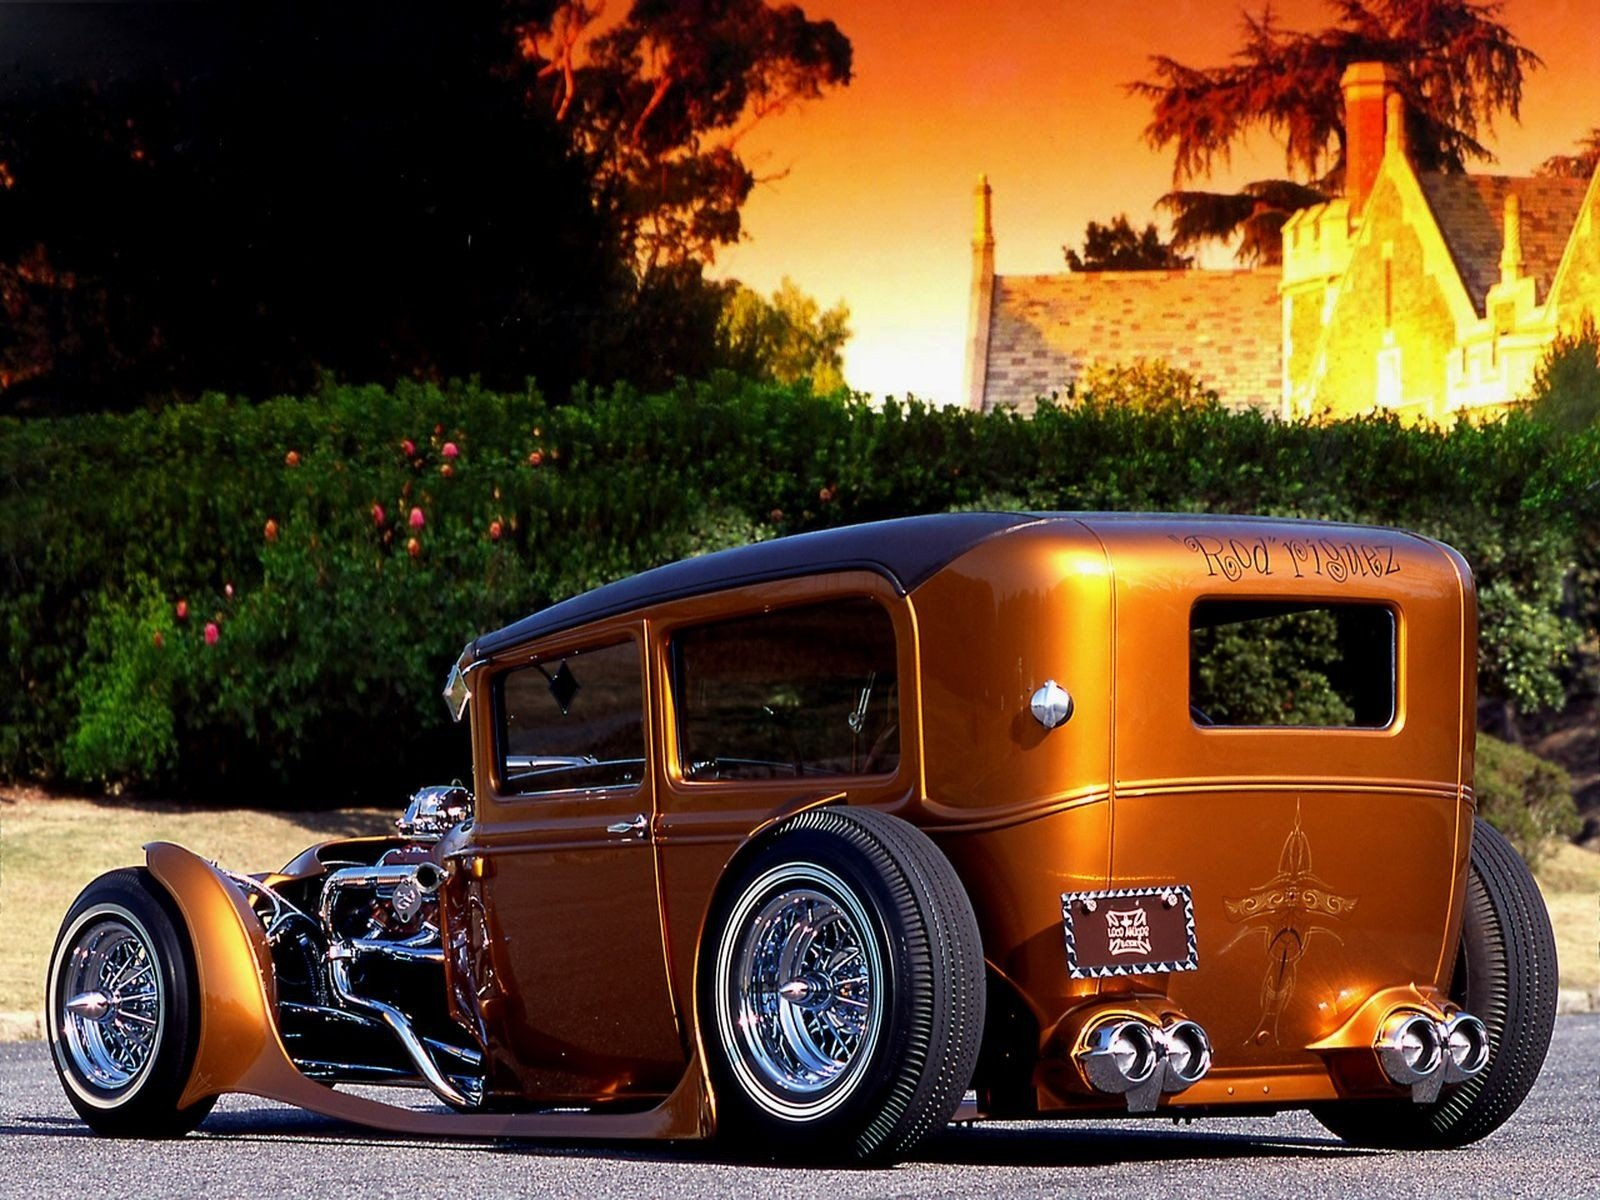 hot rod Computer Wallpapers Desktop Backgrounds 1600x1200 ID 1600x1200